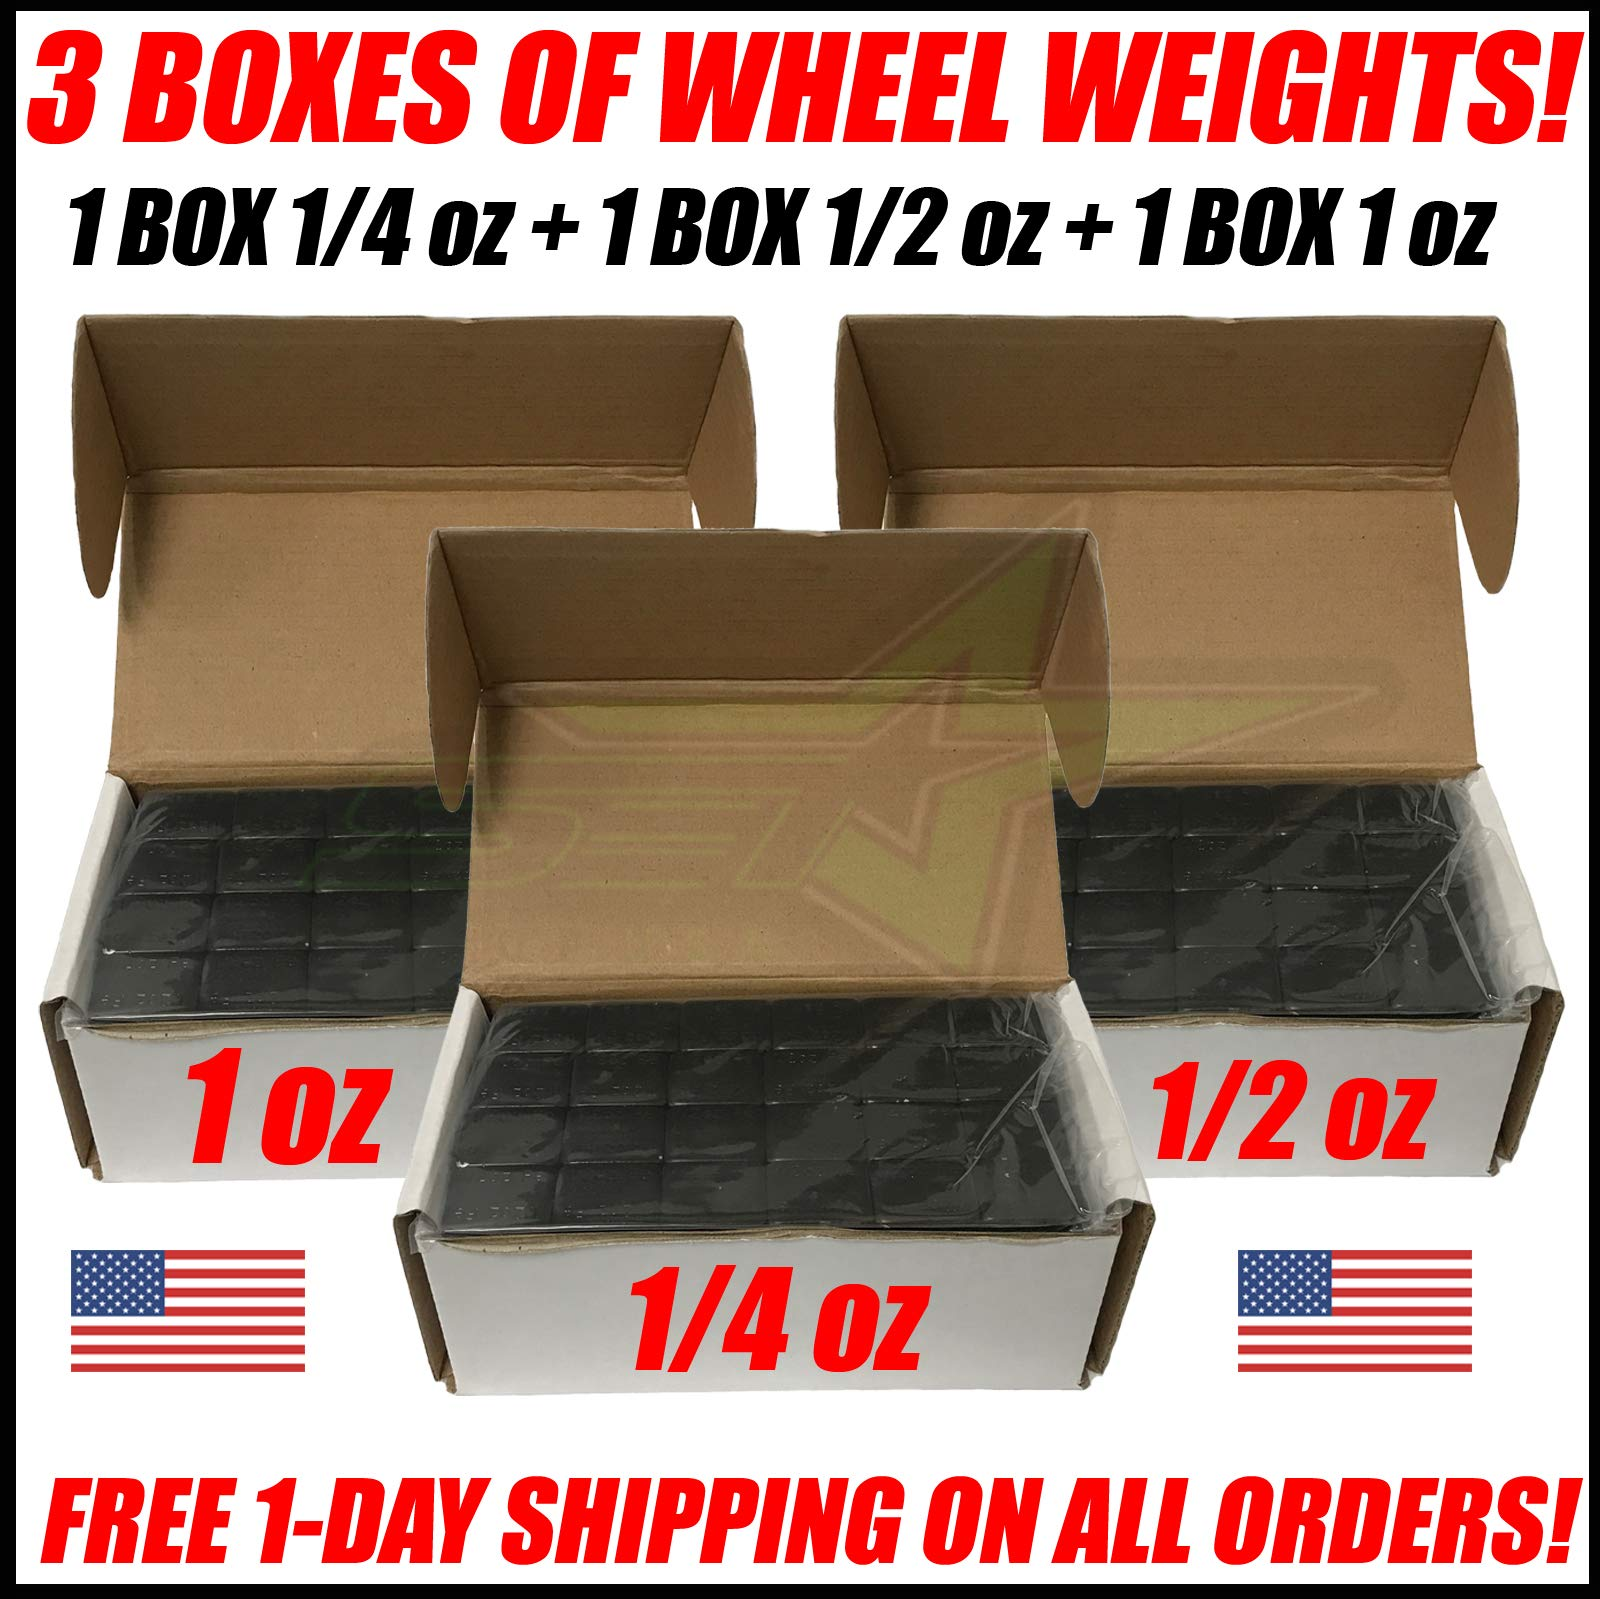 SET Group USA 3 Boxes of Black Wheel Weights 1/4oz + 1/2oz + 1oz Stick-On Adhesive Tape Total 27 LB (432oz) by SET Group USA